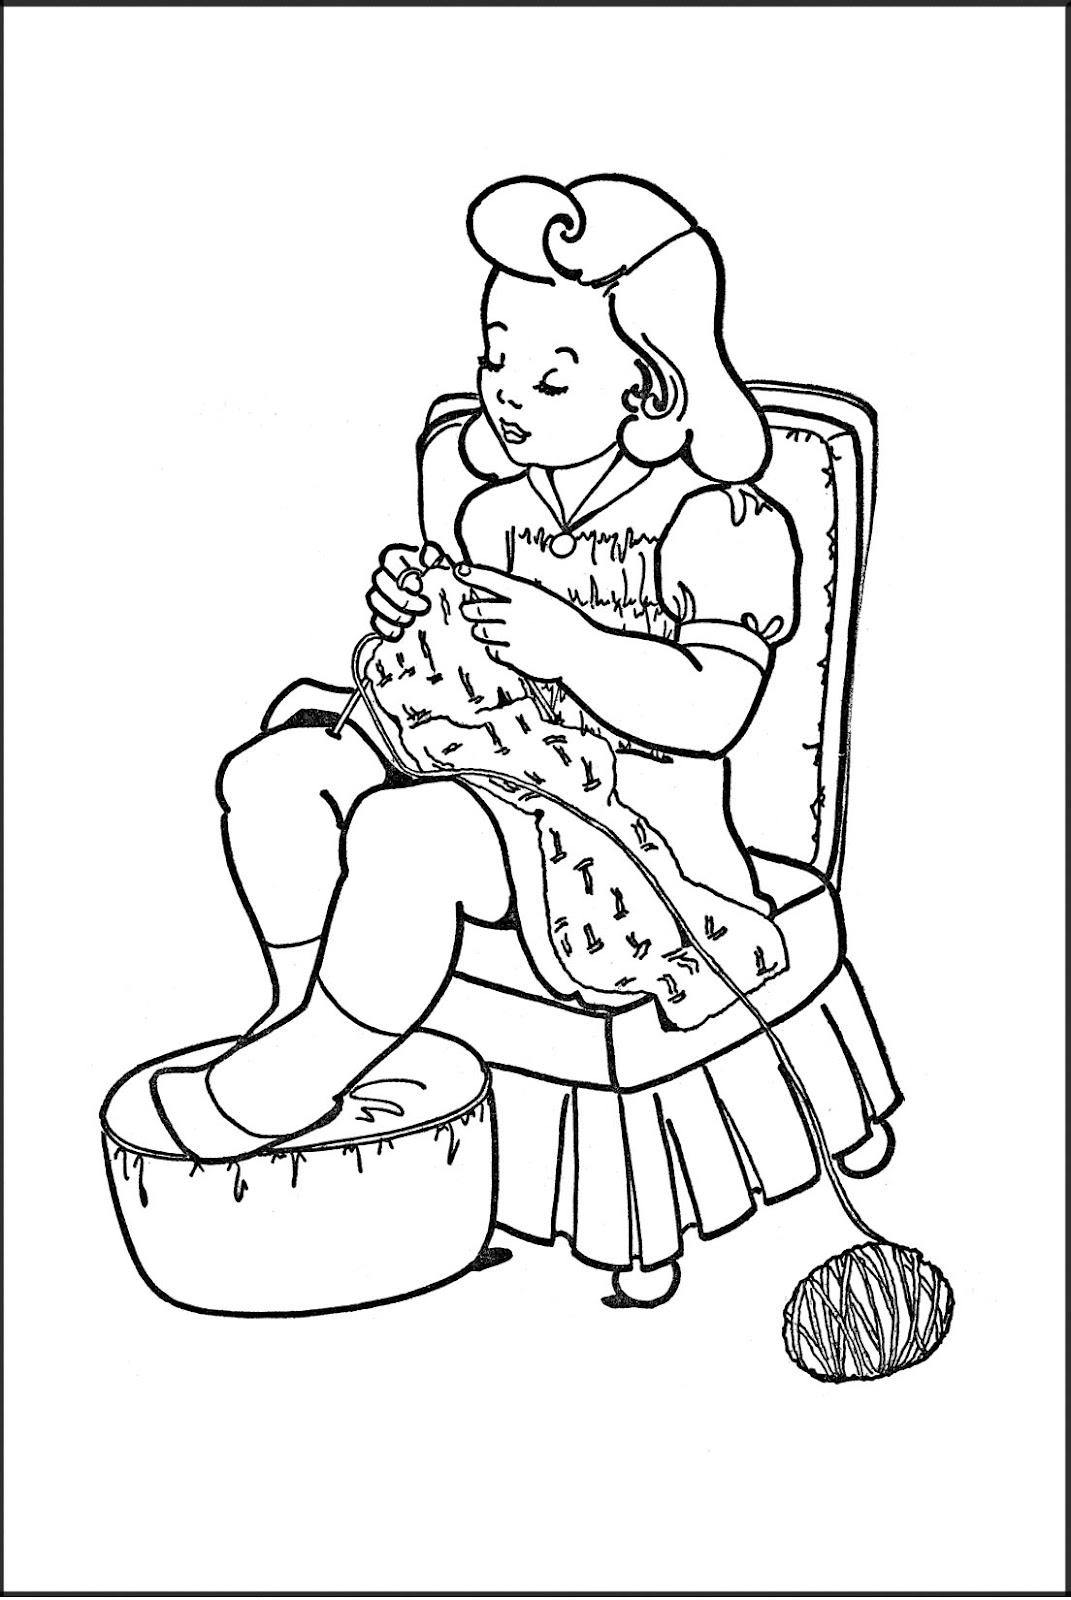 cassic art coloring pages - photo#46